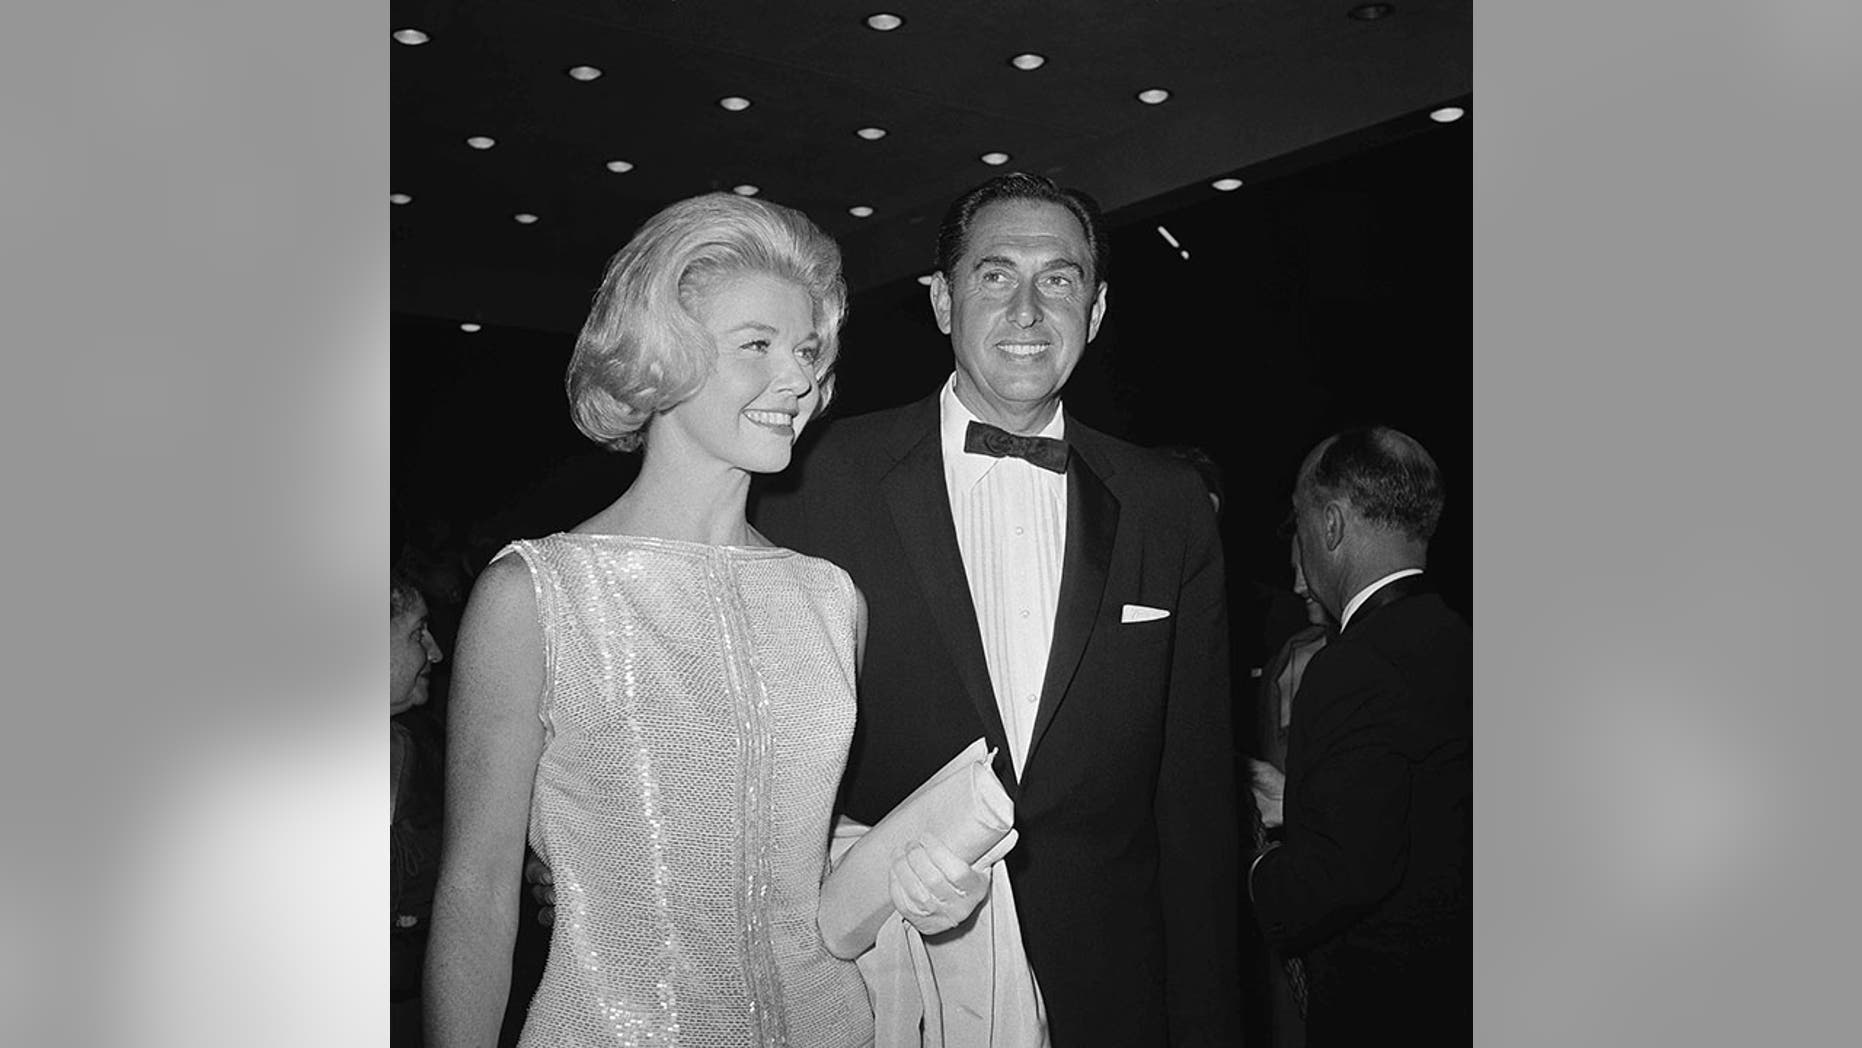 Doris Day and then-husband Marty Melcher arrive at the 1960 Academy Awards at the Pantages Theater in Los Angeles.